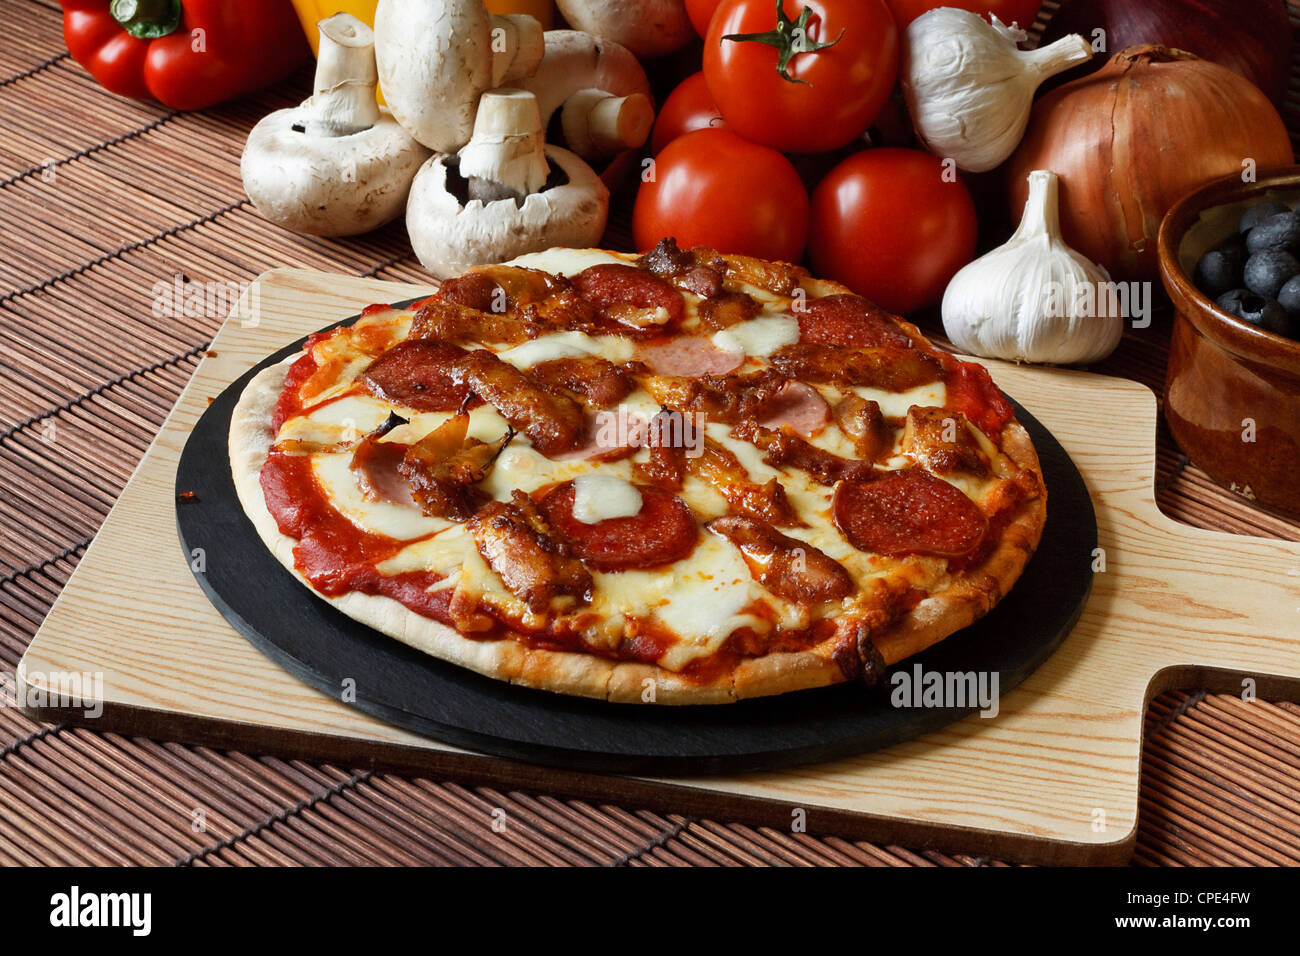 Barbecue or BBQ meat feast pizza with a topping of pepperoni, sausage, salami and chicken wings Stock Photo